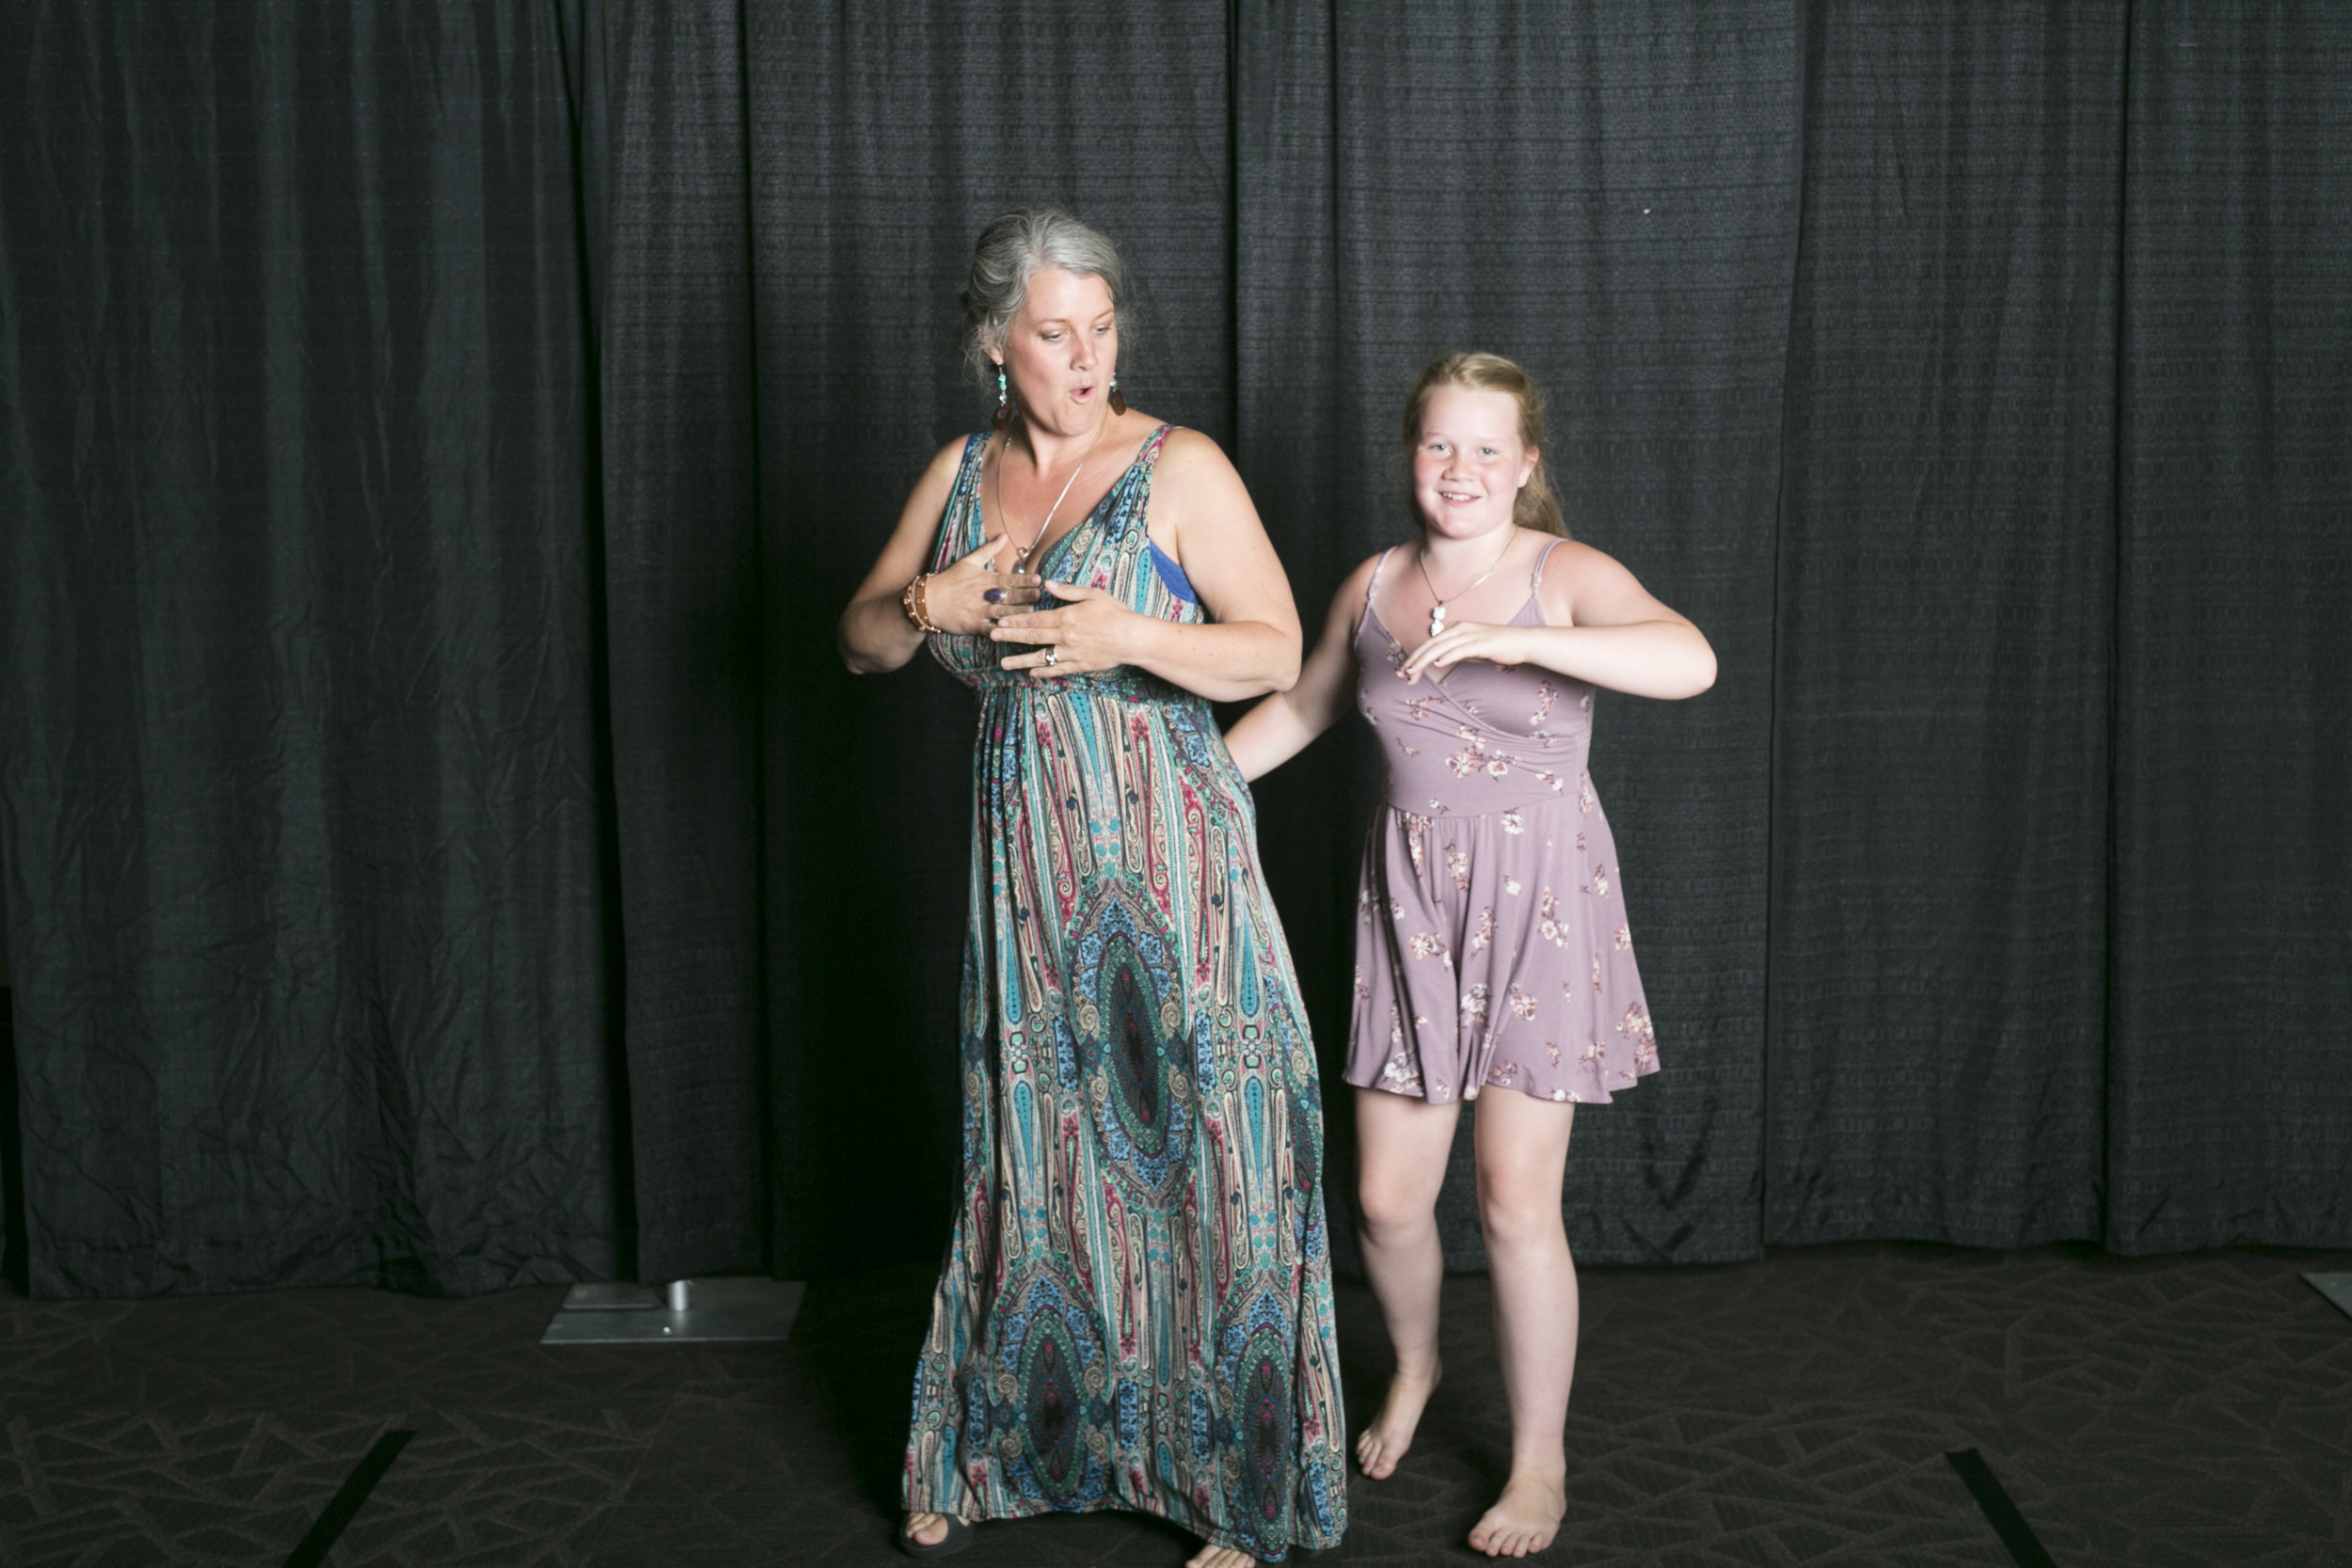 wedding photo booth-38.jpg